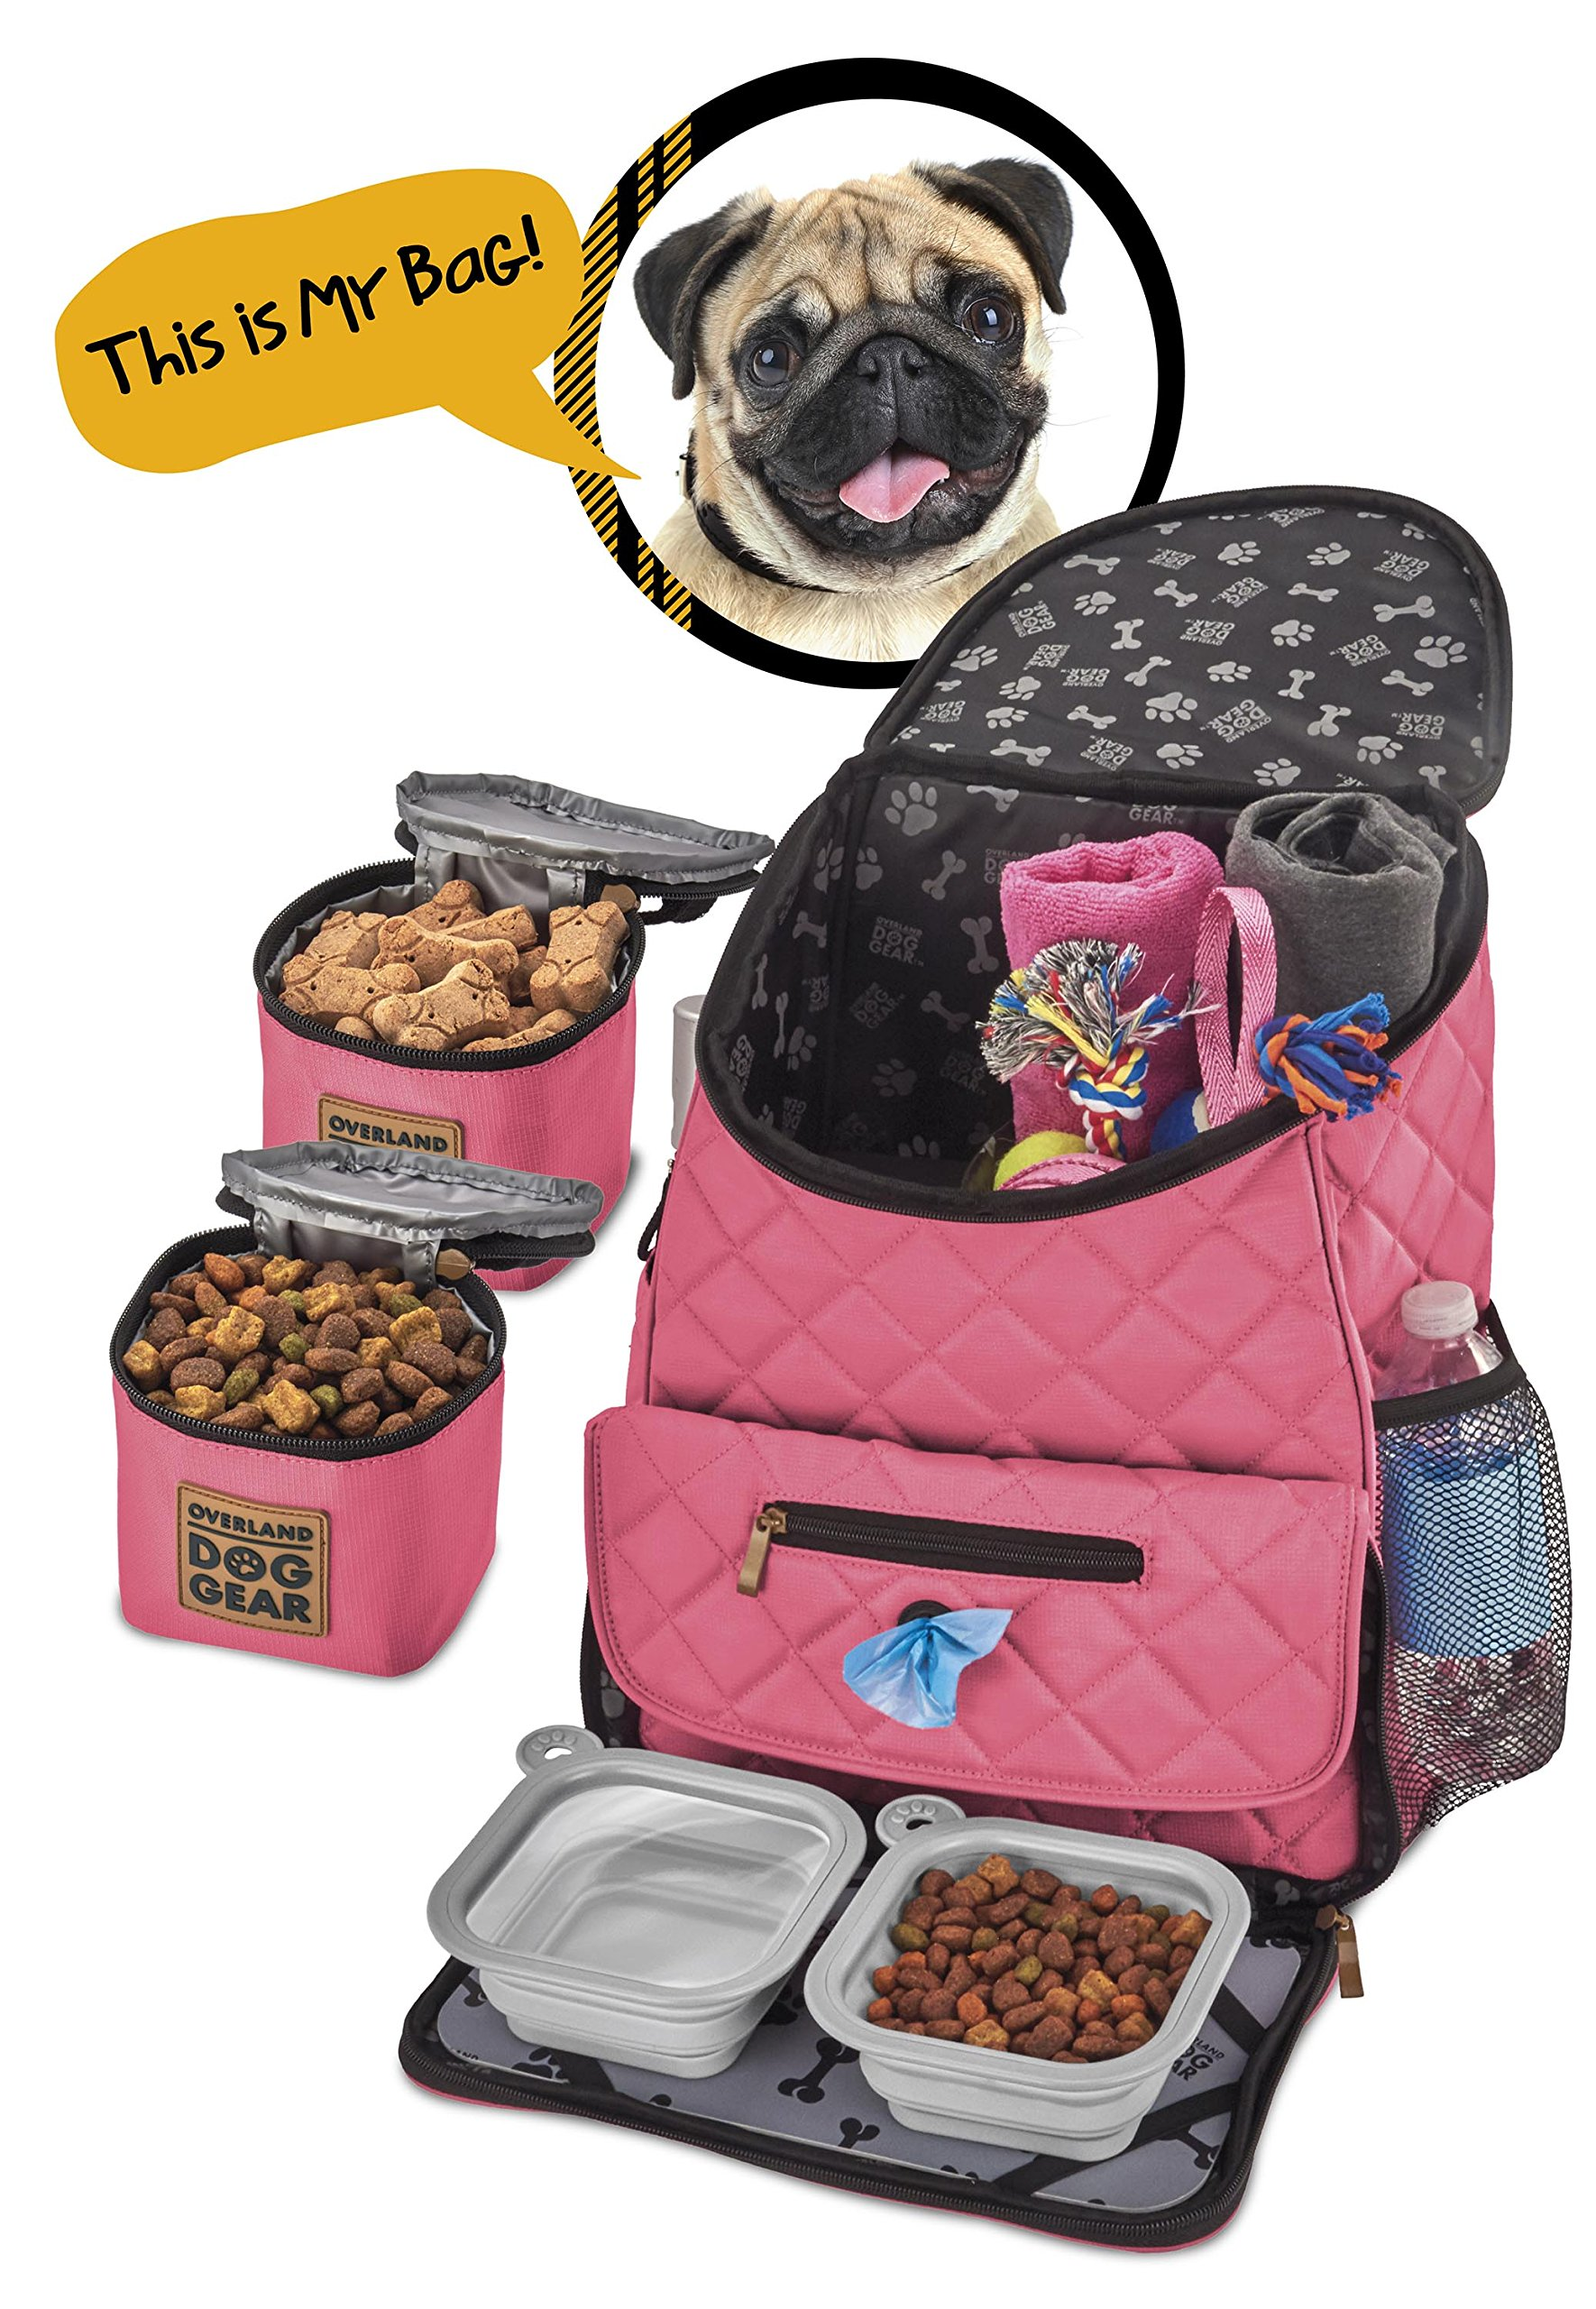 Dog Travel Bag - Deluxe Quilted Weekender Backpack - Includes Lined Food Carriers and Collapsible Bowls (Pink)